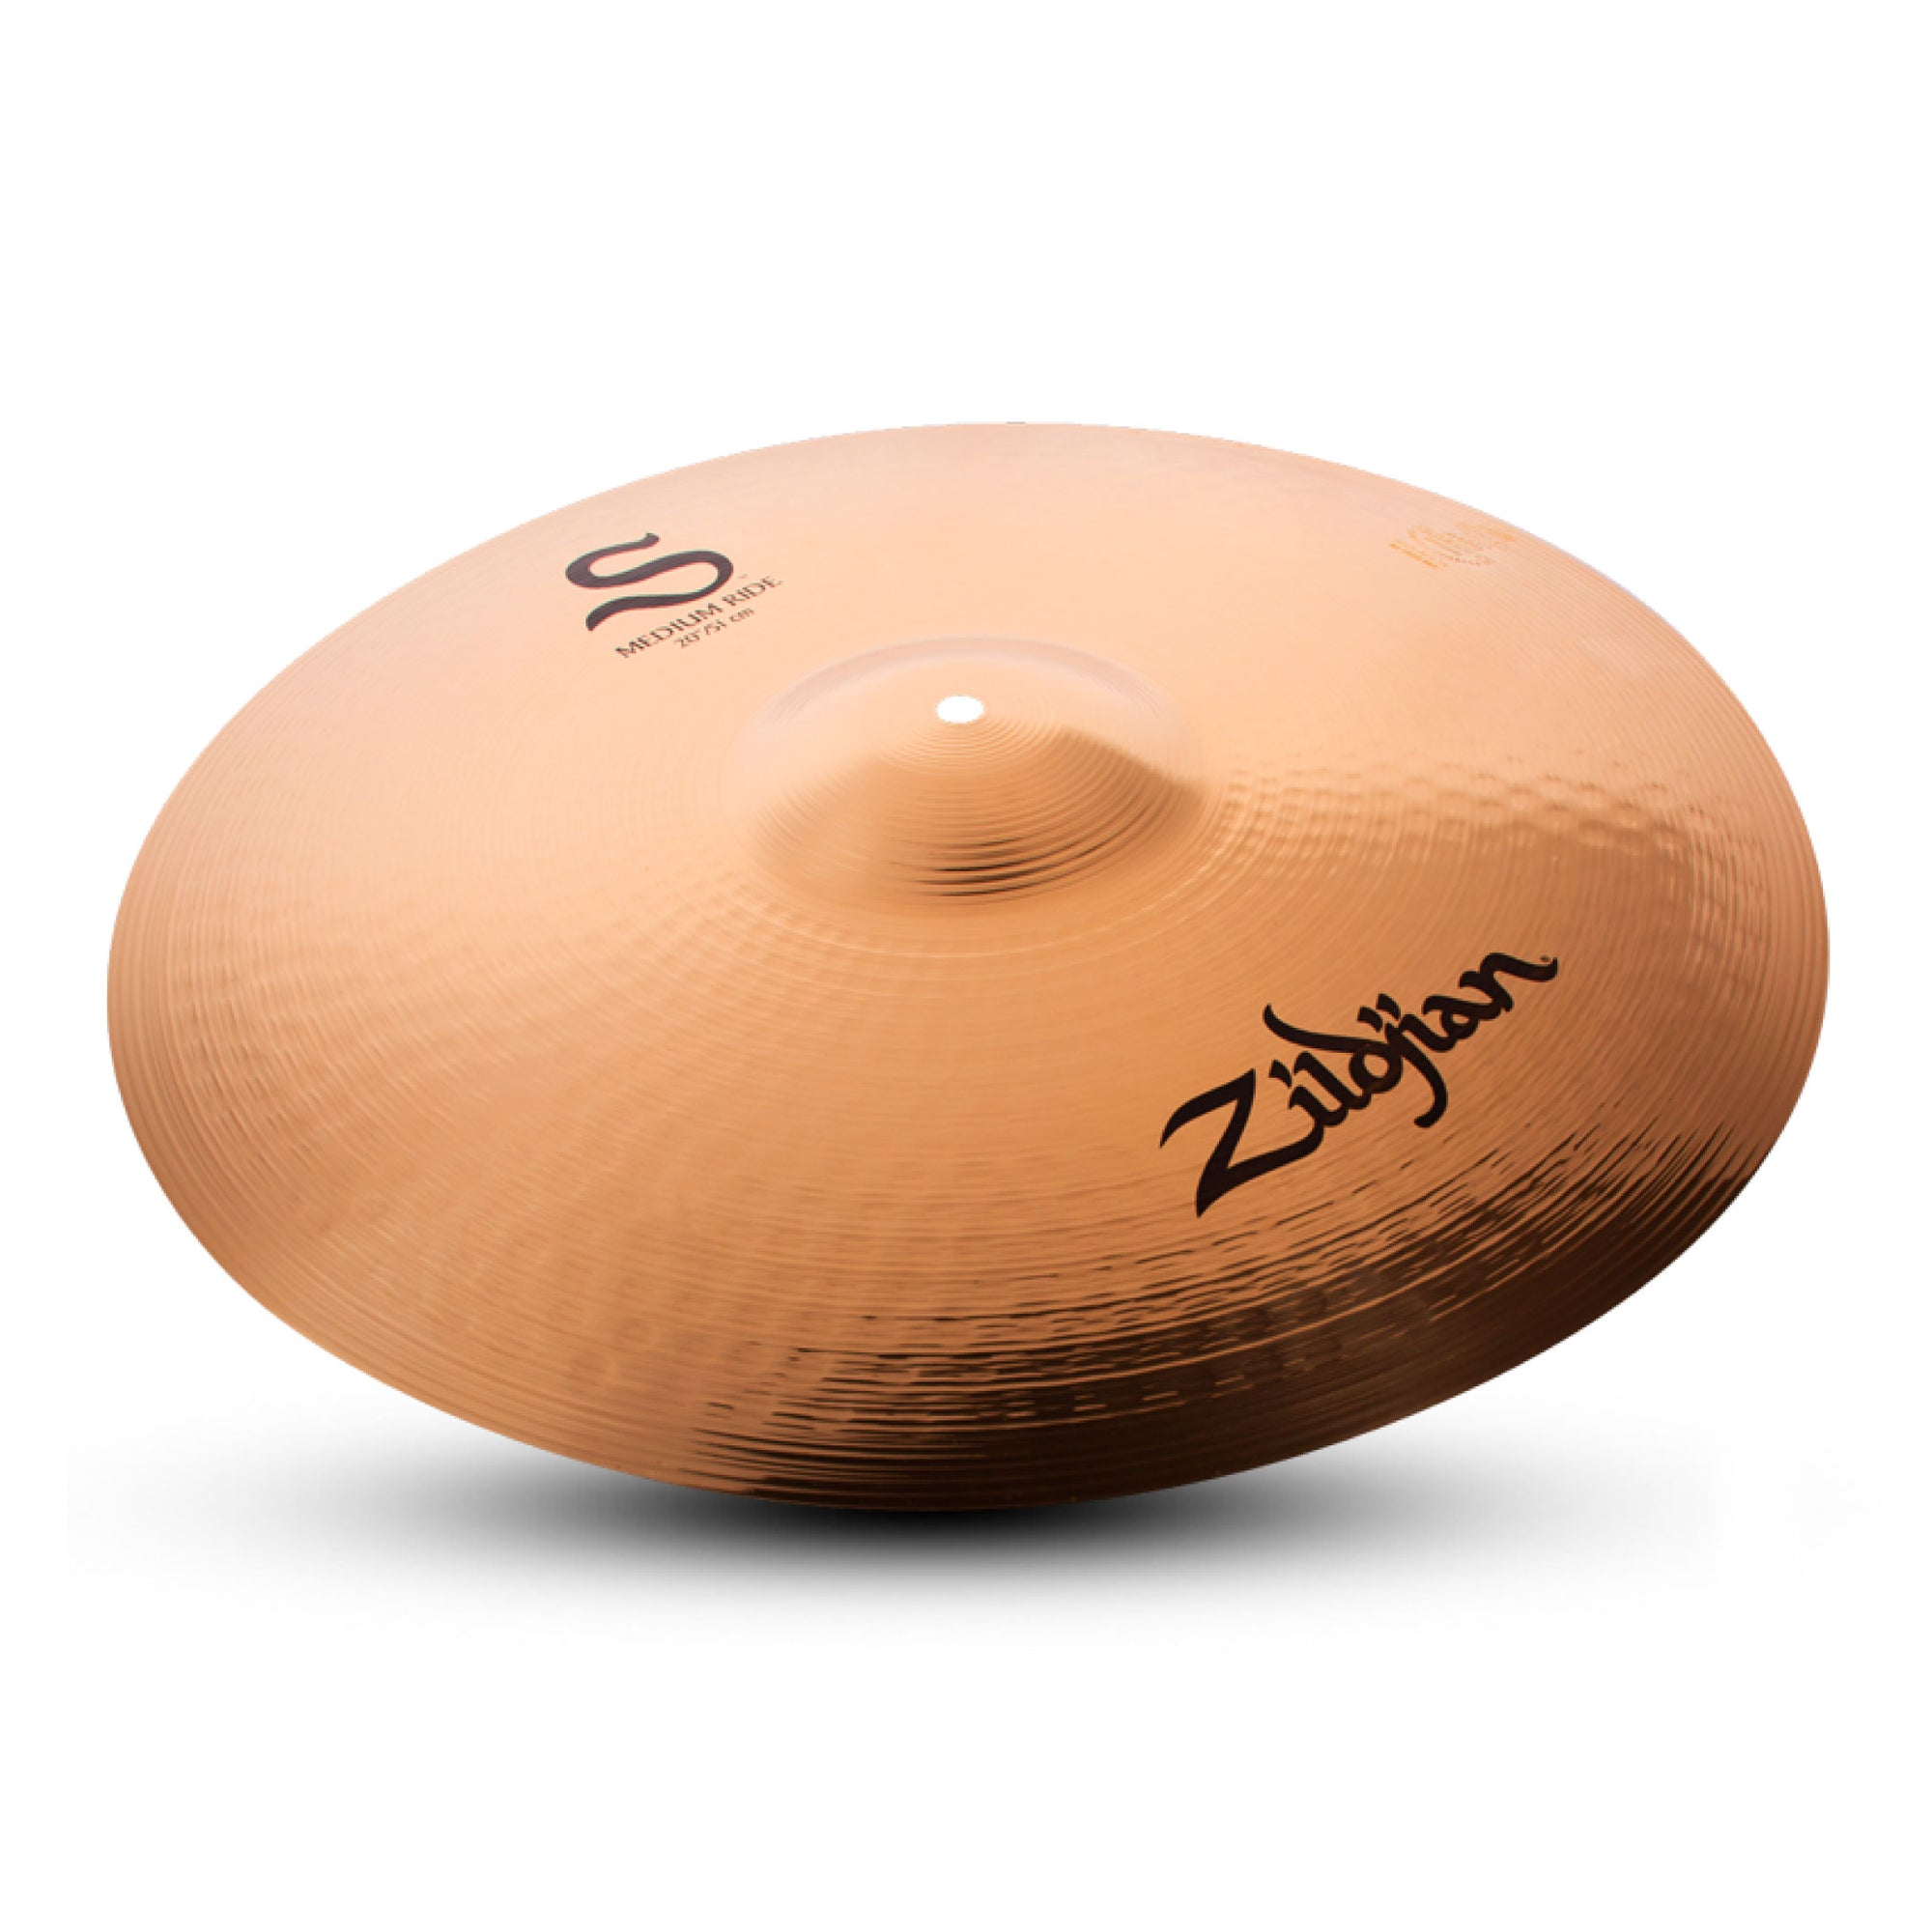 Zildjian Cymbal S Med Ride (Discontinued) - Tarpley Music Company, Inc.